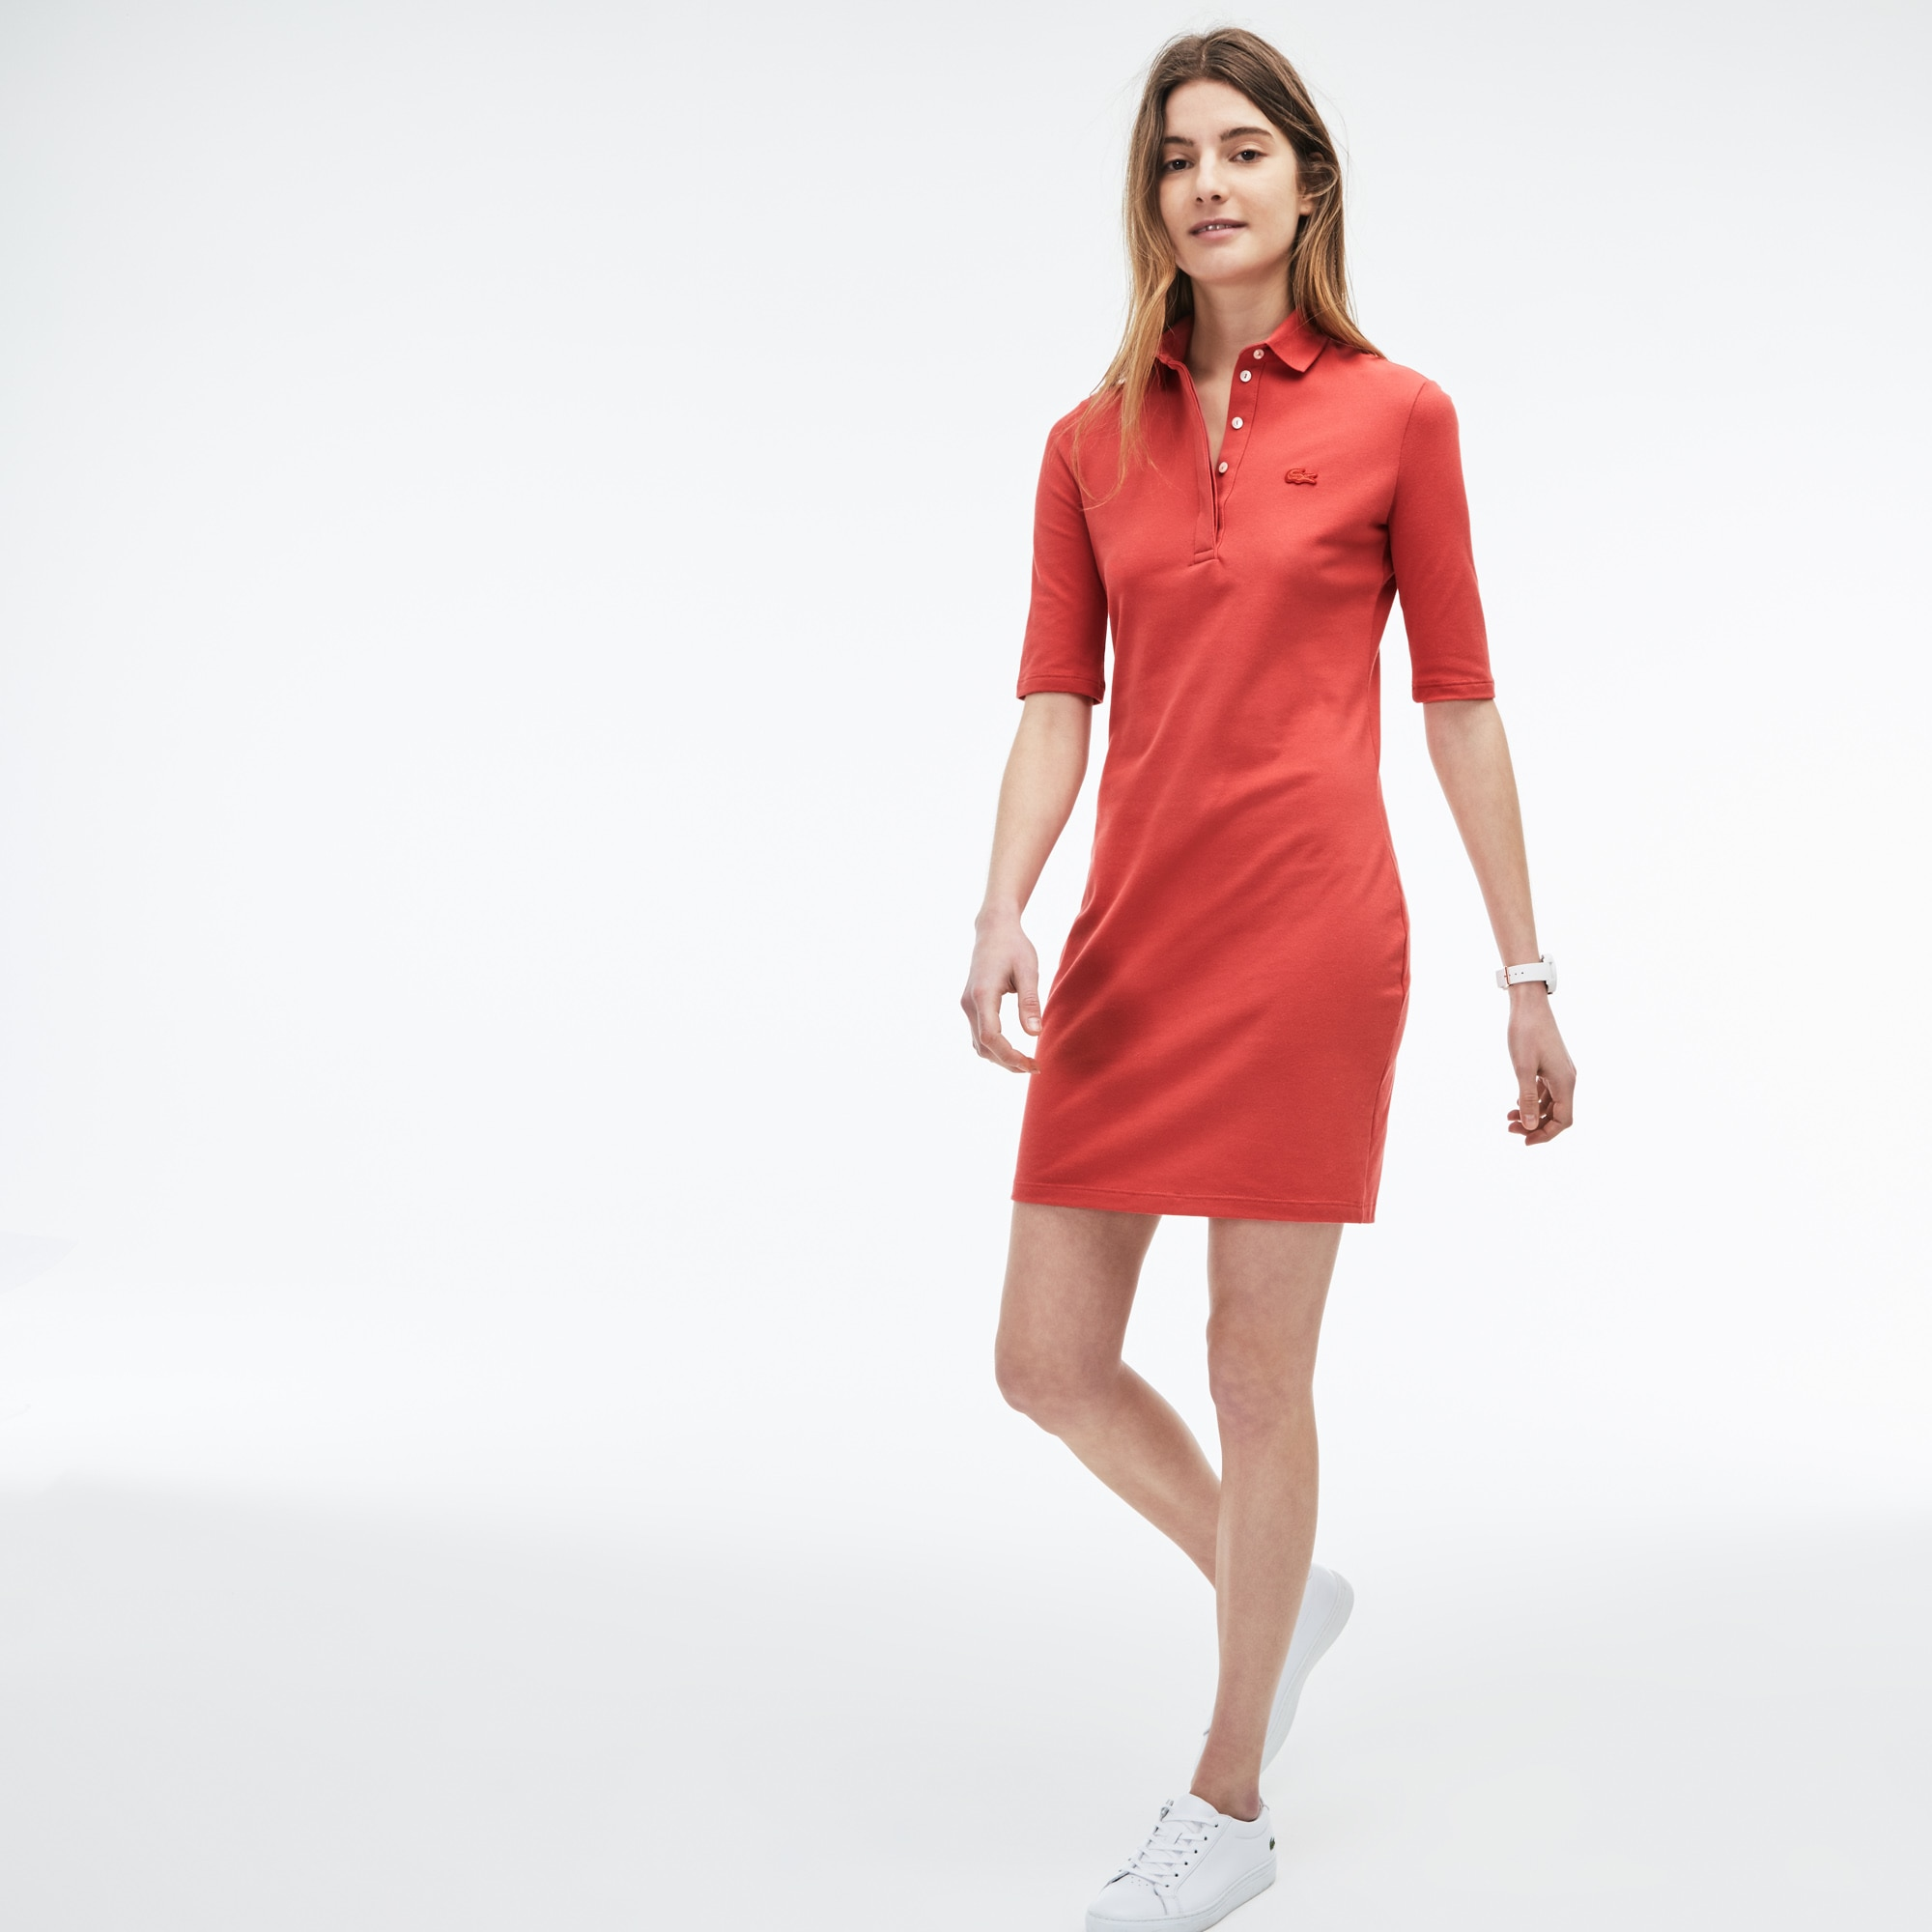 Slim Fit Damen-Polokleid aus Mini-Piqué mit Stretch